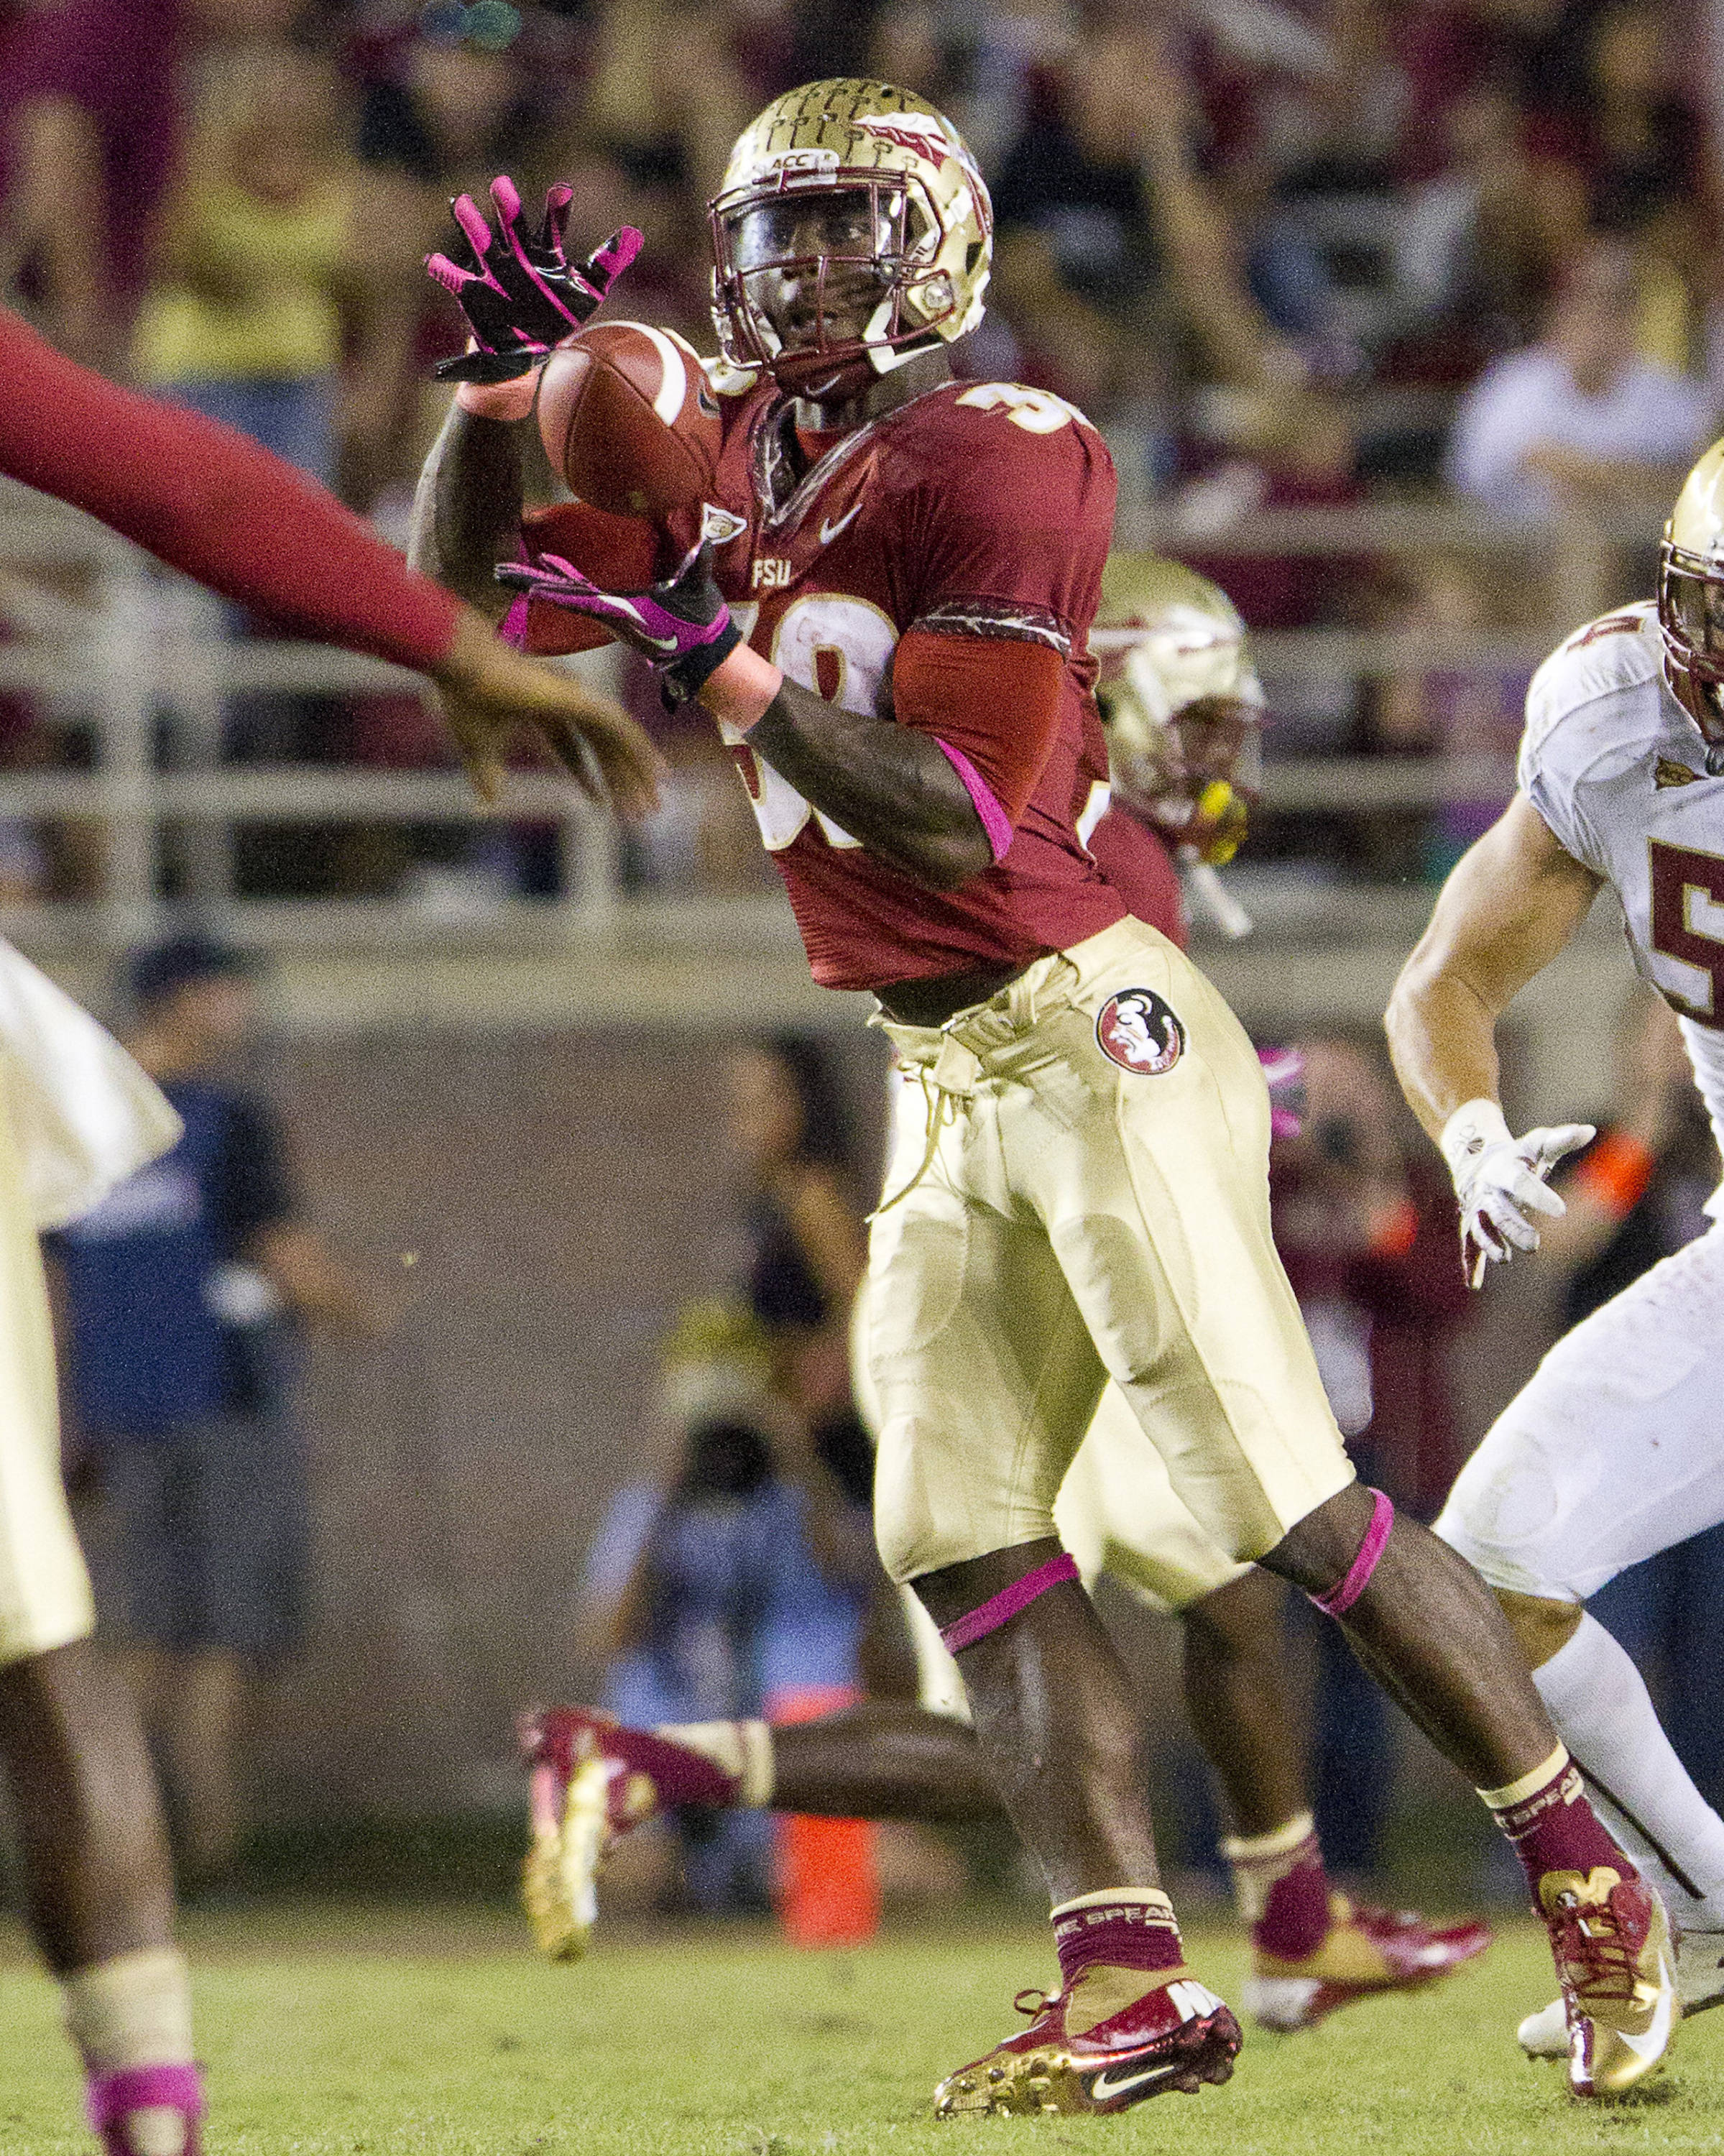 Jr. Wilder James (32) makes a catch during the FSU vs Boston College football game on October 13, 2012 in Tallahassee, Fla.